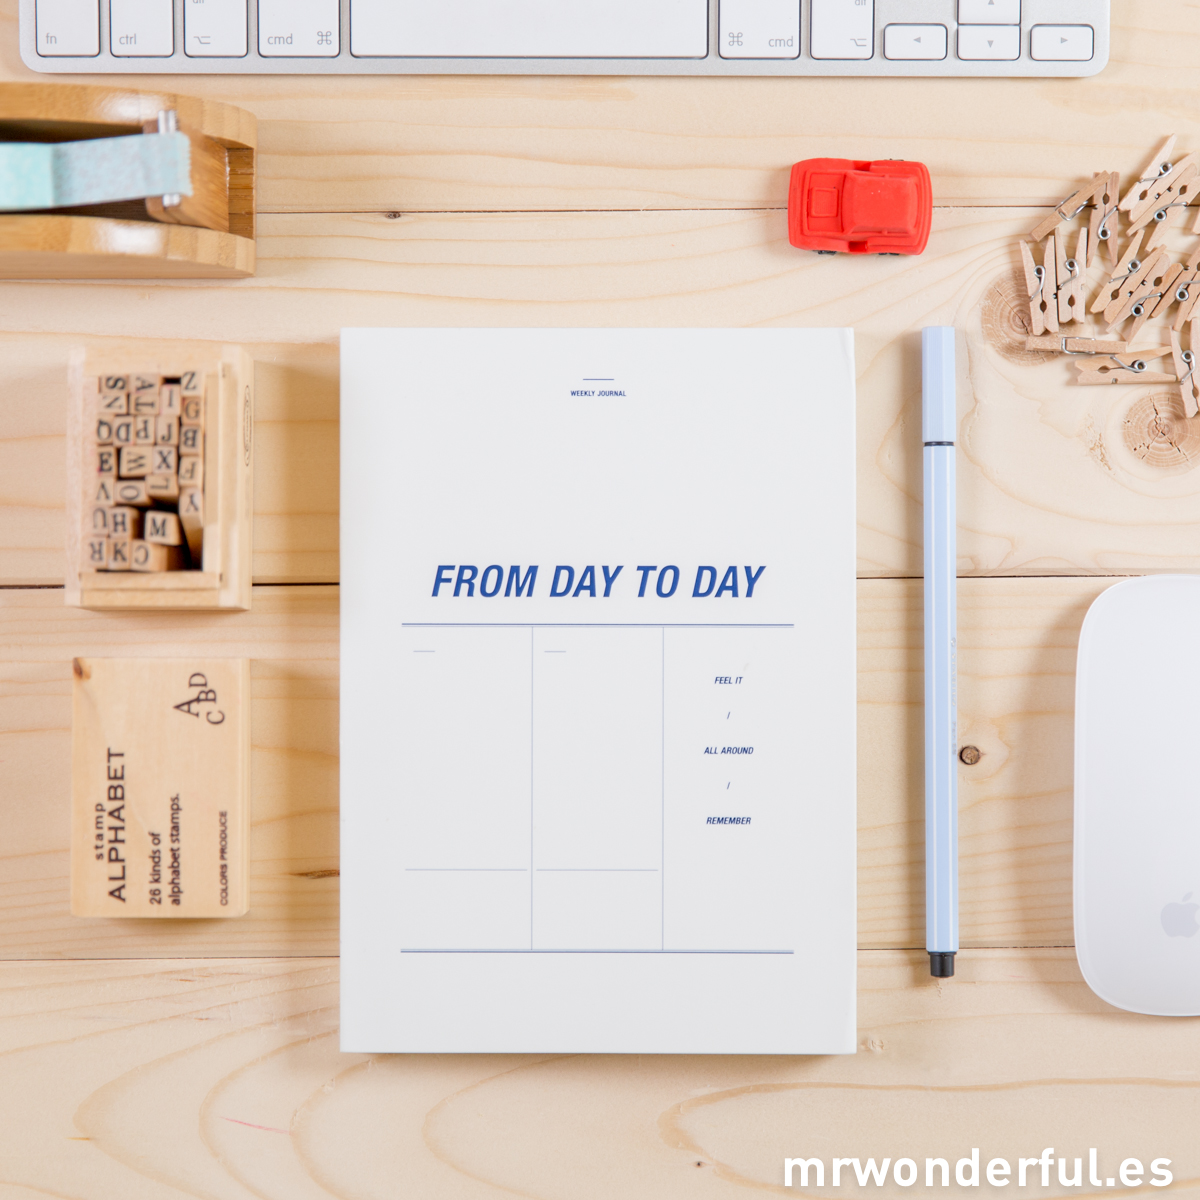 mrwonderful_SS-2647_Organizador-semanal _From-day-to-day-3